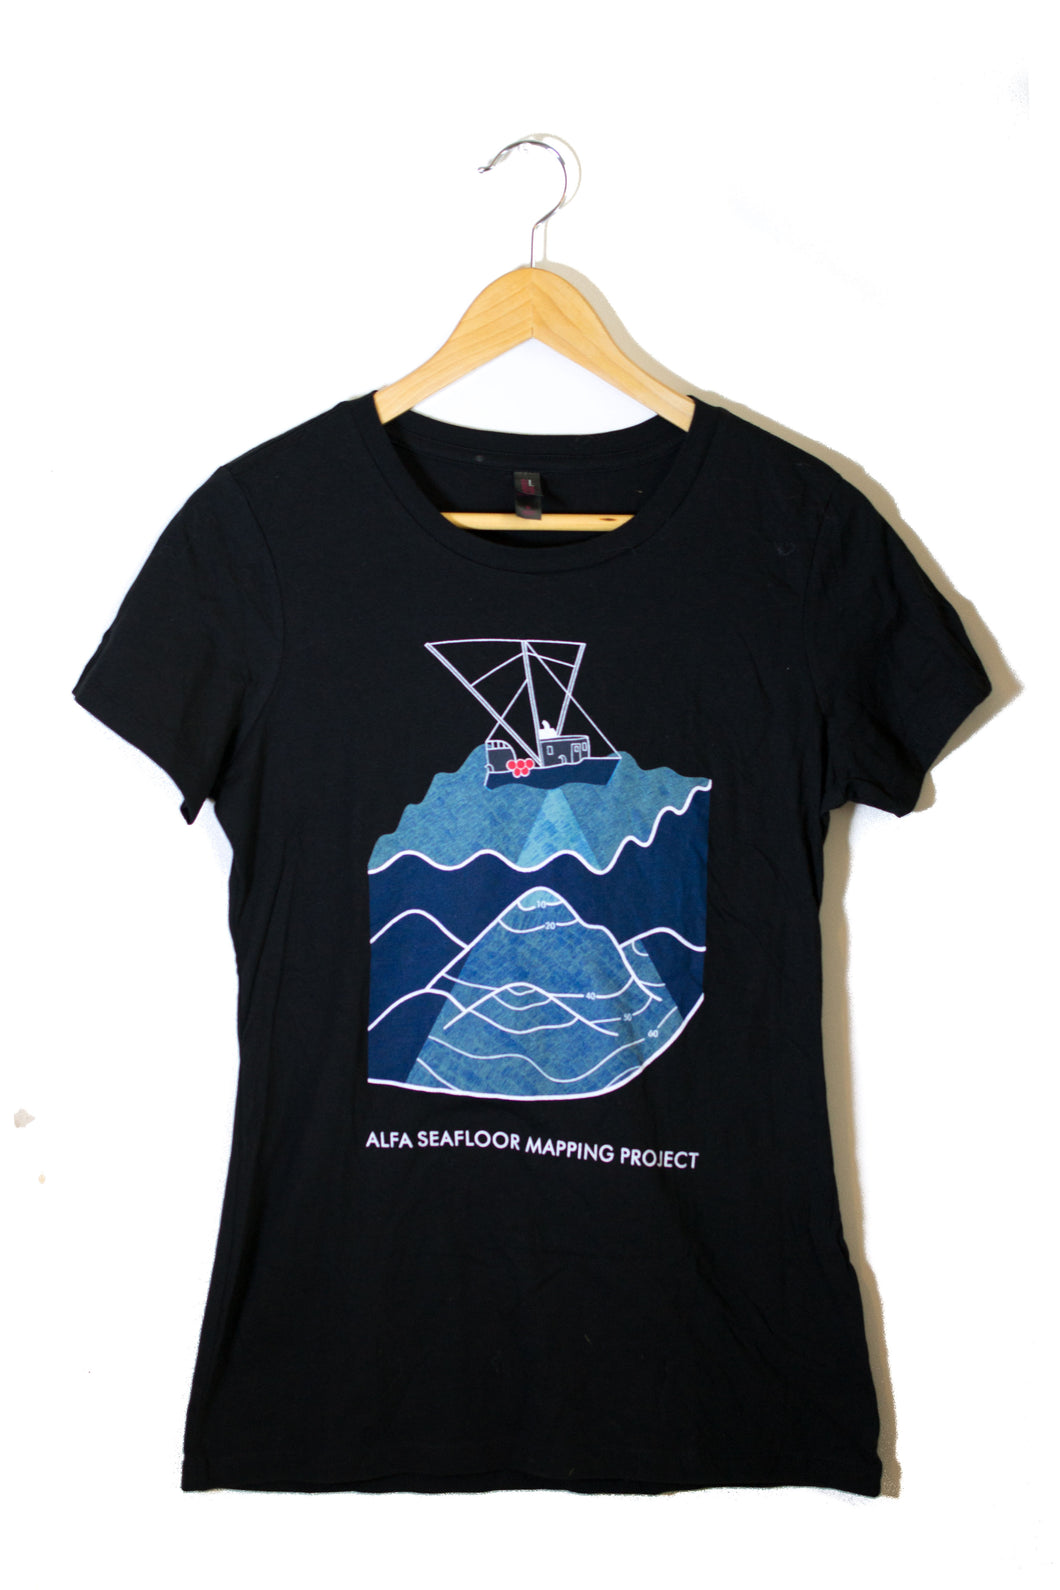 Women's Seafloor Mapping T Shirt: Blue Design